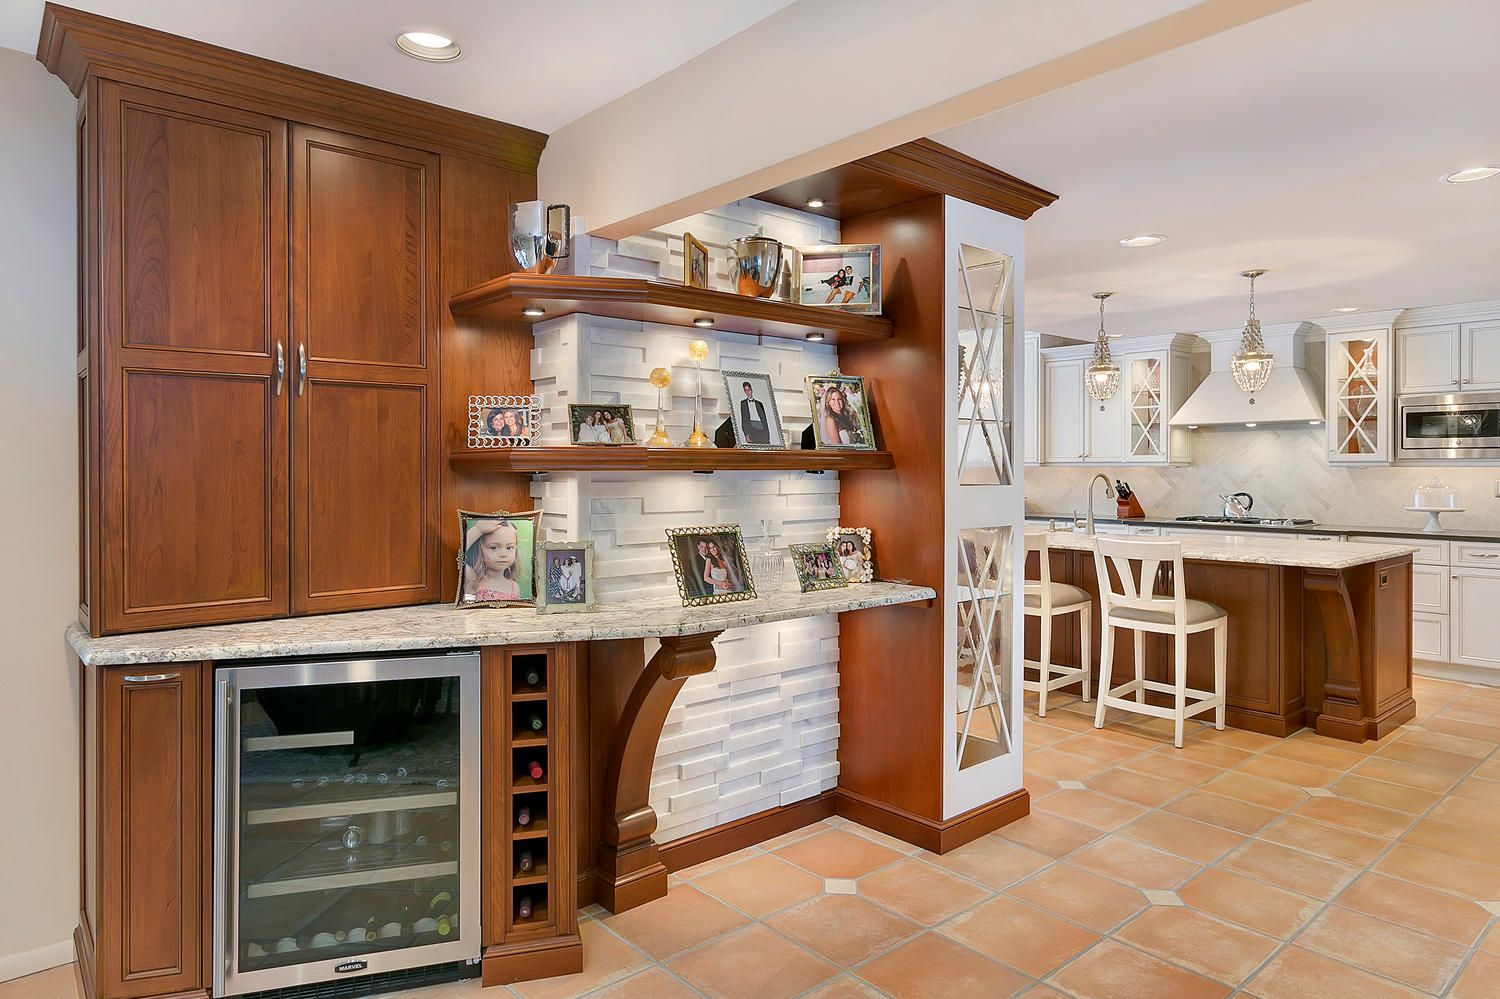 True Original Style Kitchen Morganville New Jerseydesign Line Amazing Design Line Kitchens Design Decoration